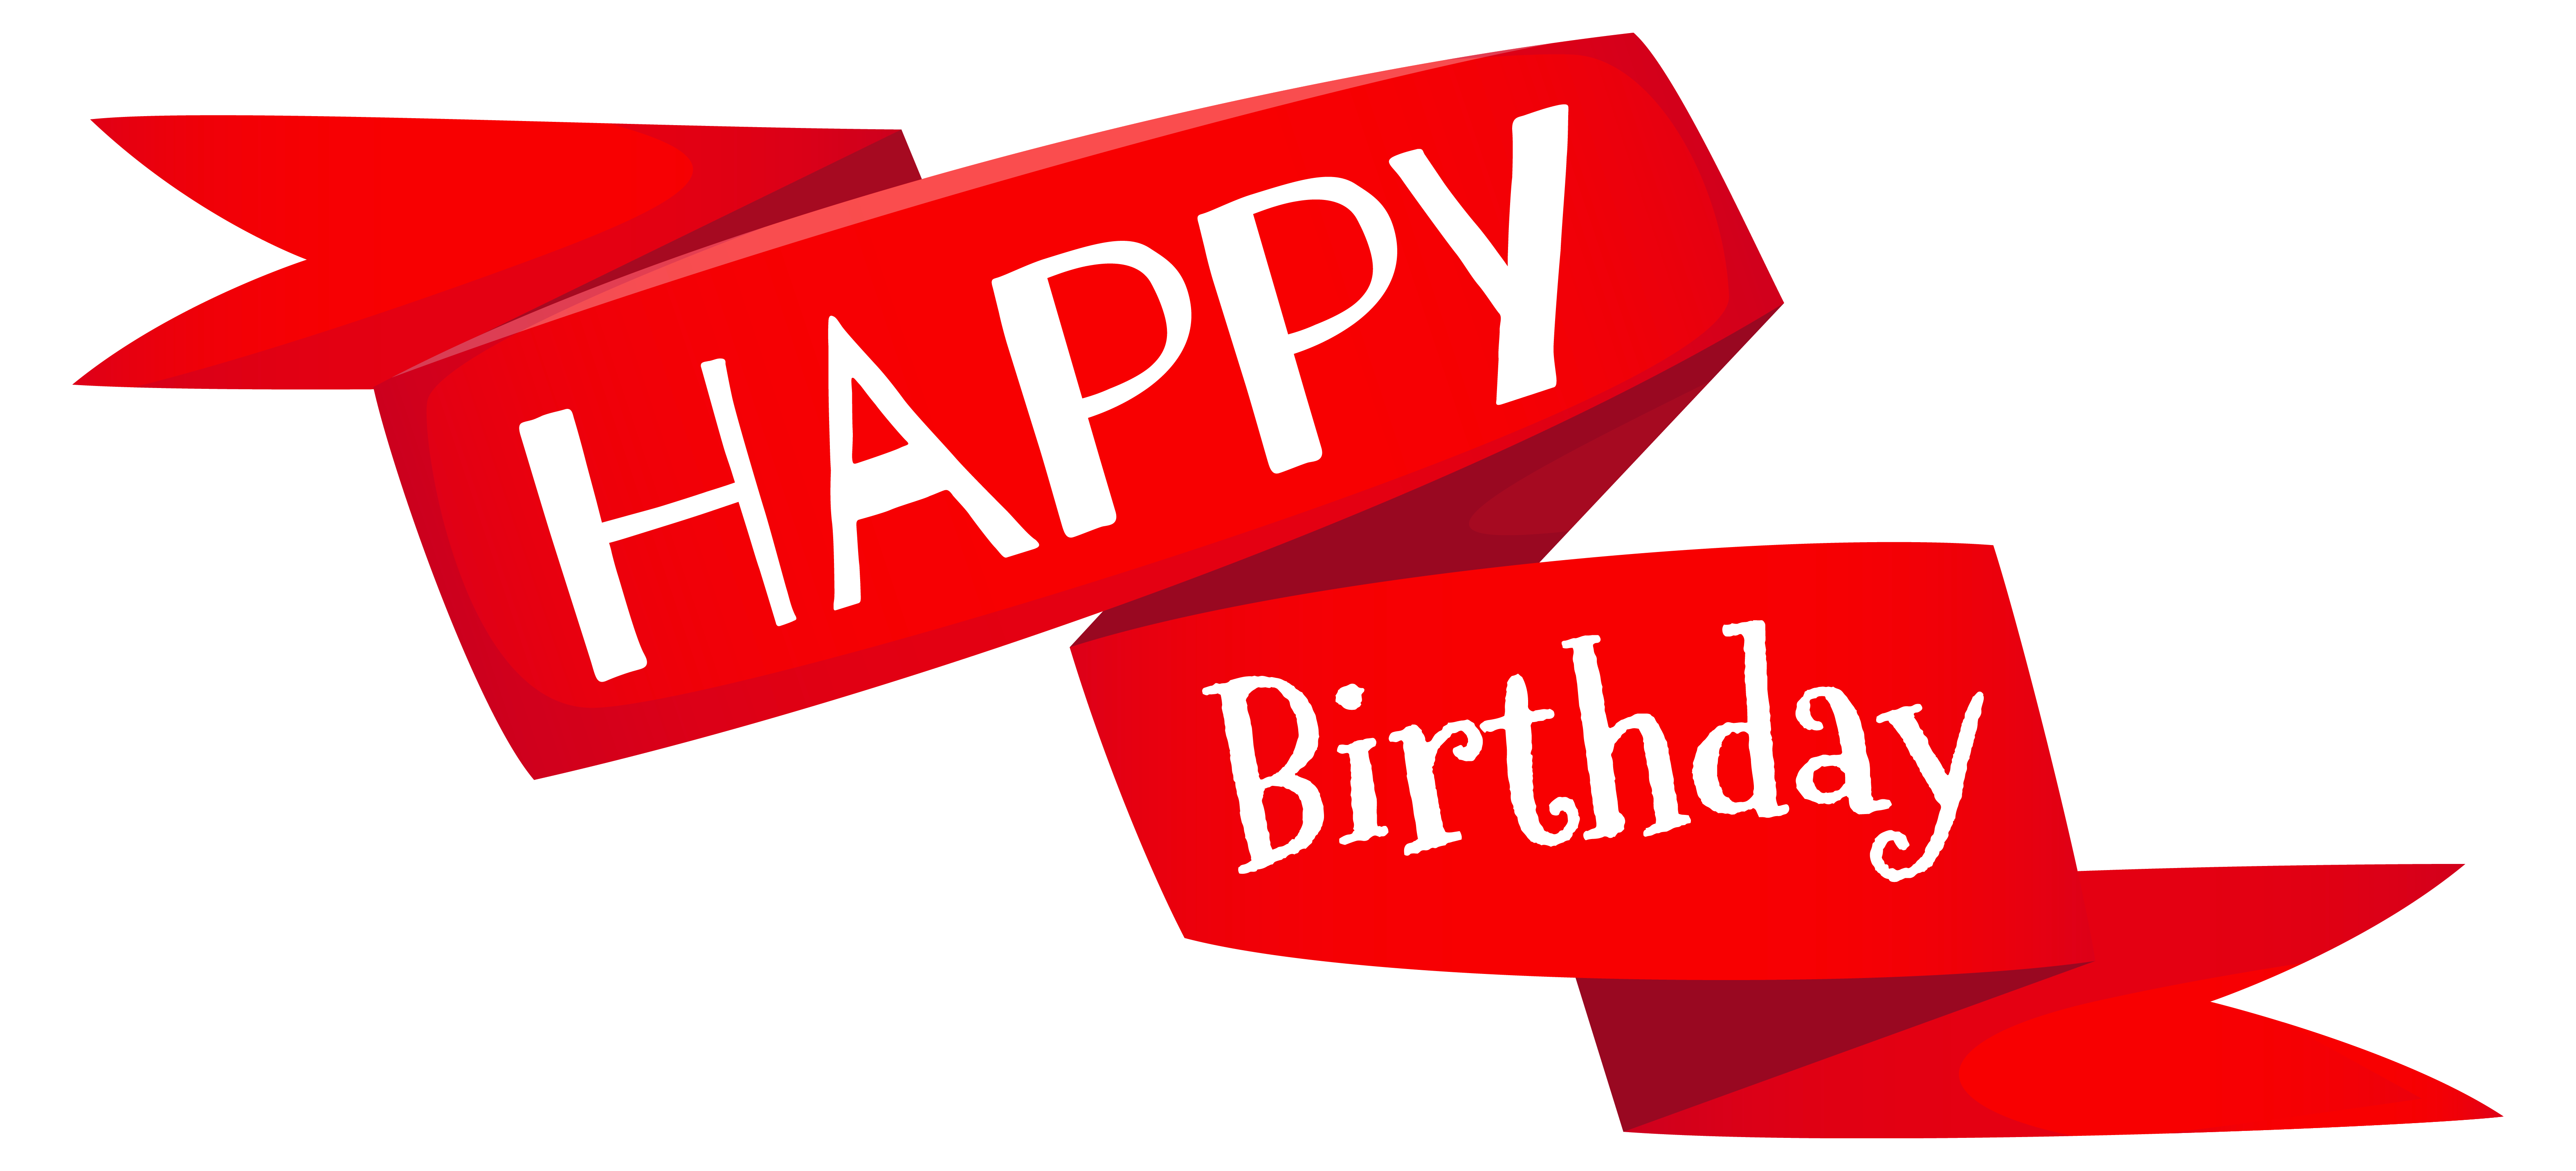 Red happy birthday banner. Mail clipart msg